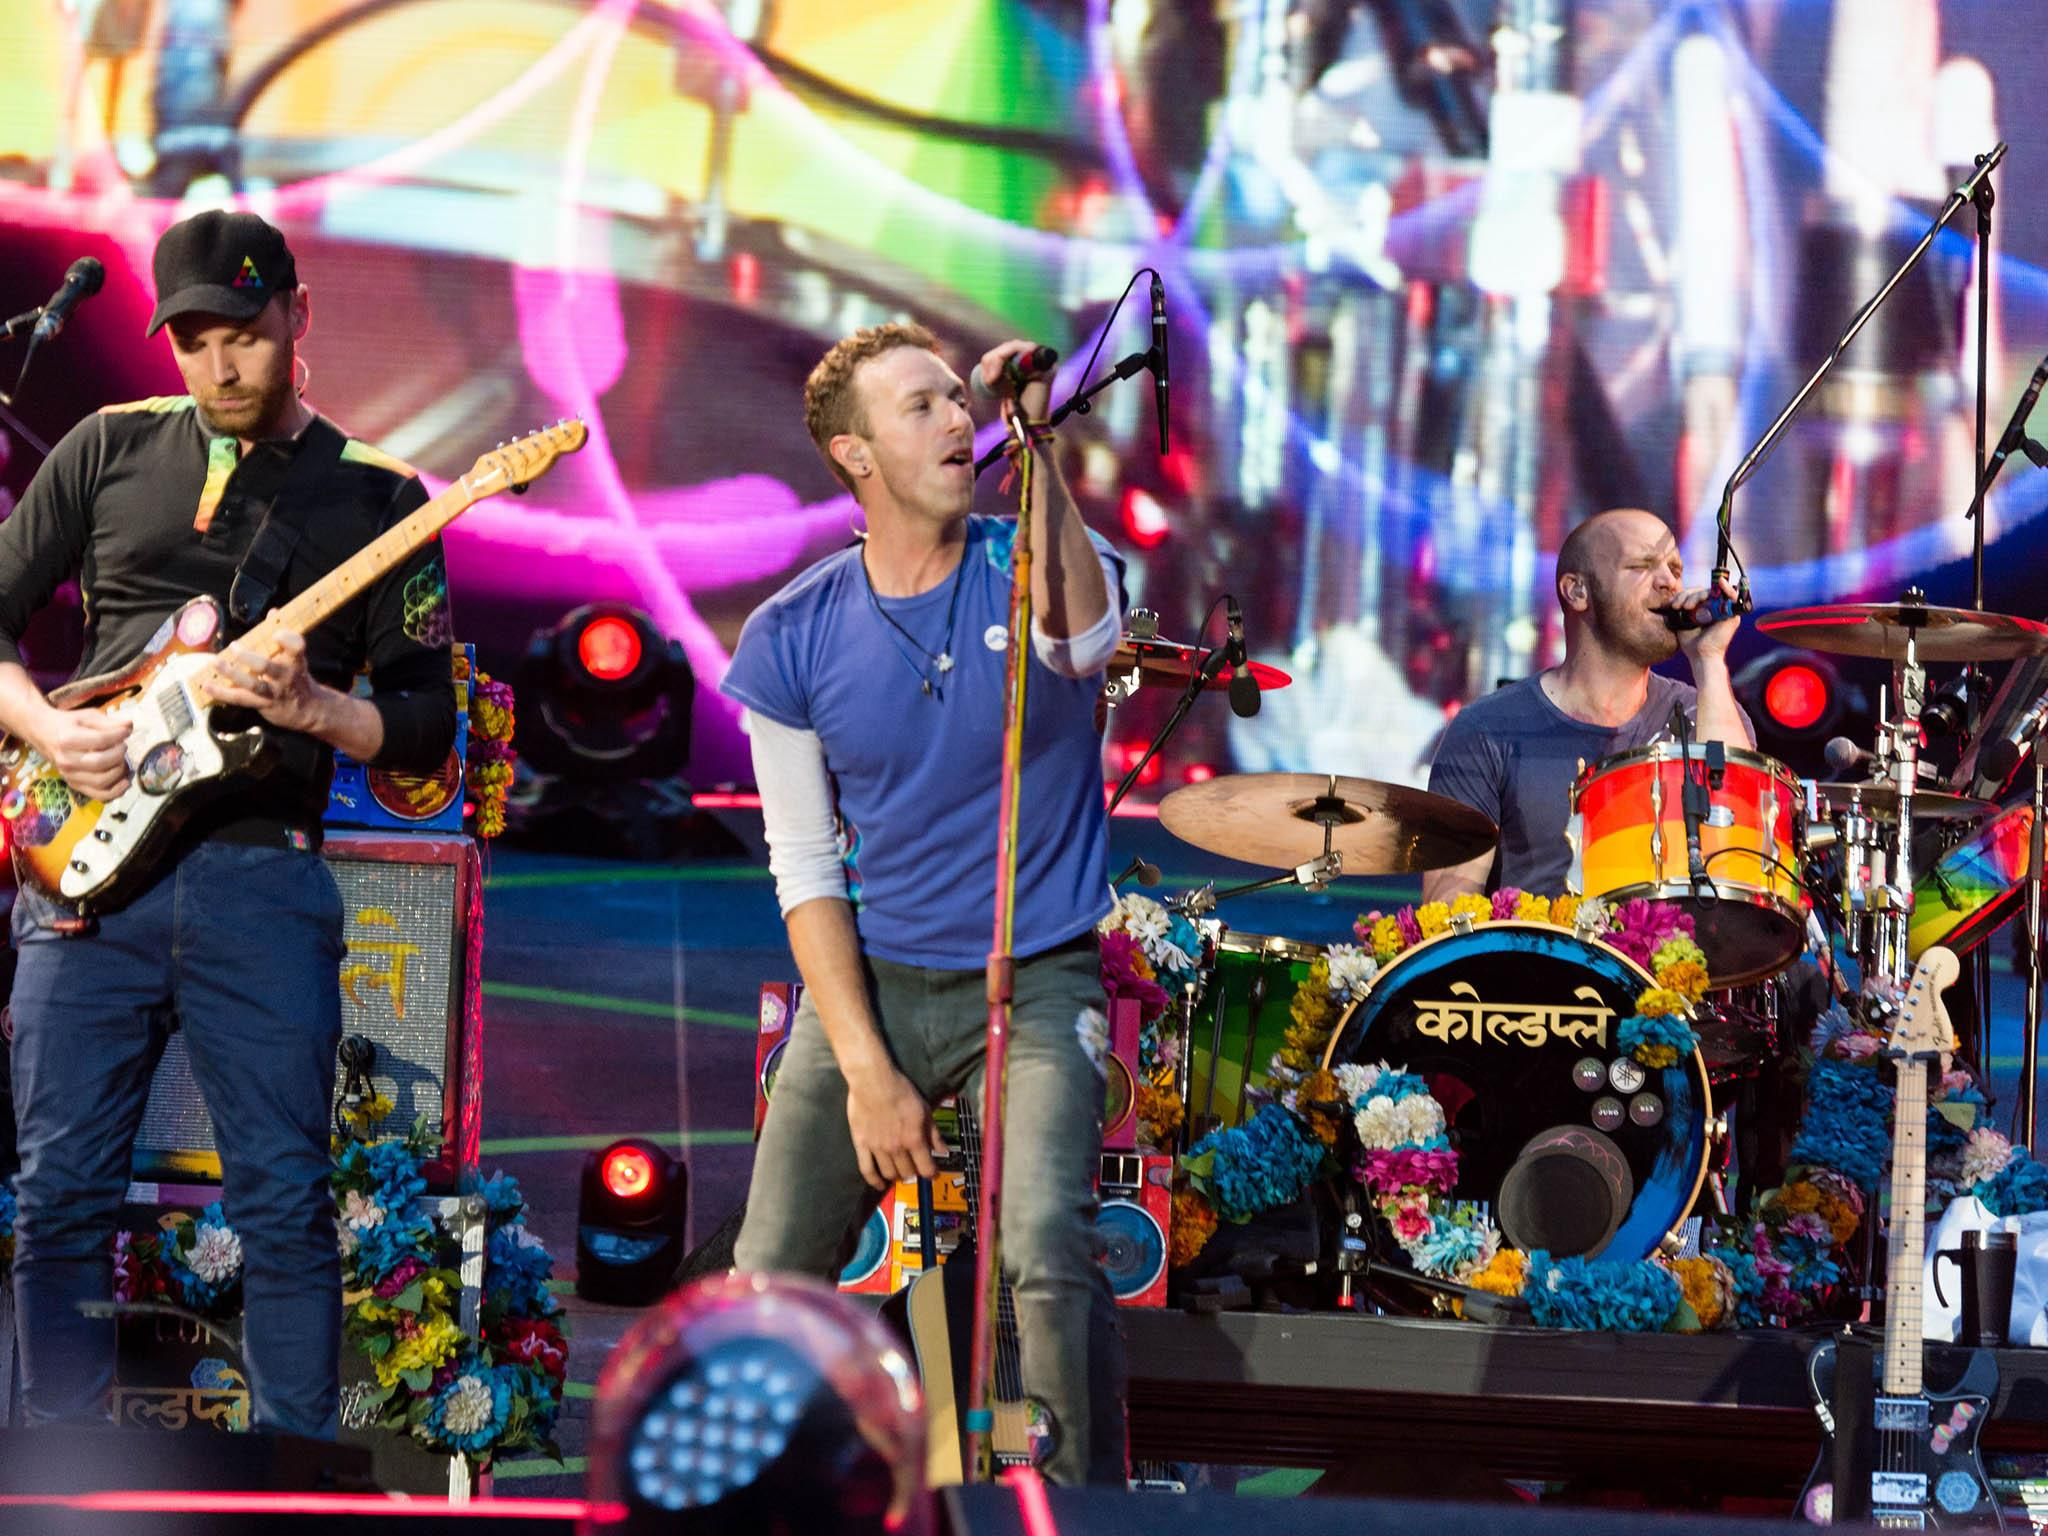 Coldplay wembley arena review rapturous reception for evergreen masters of the big occasion the independent